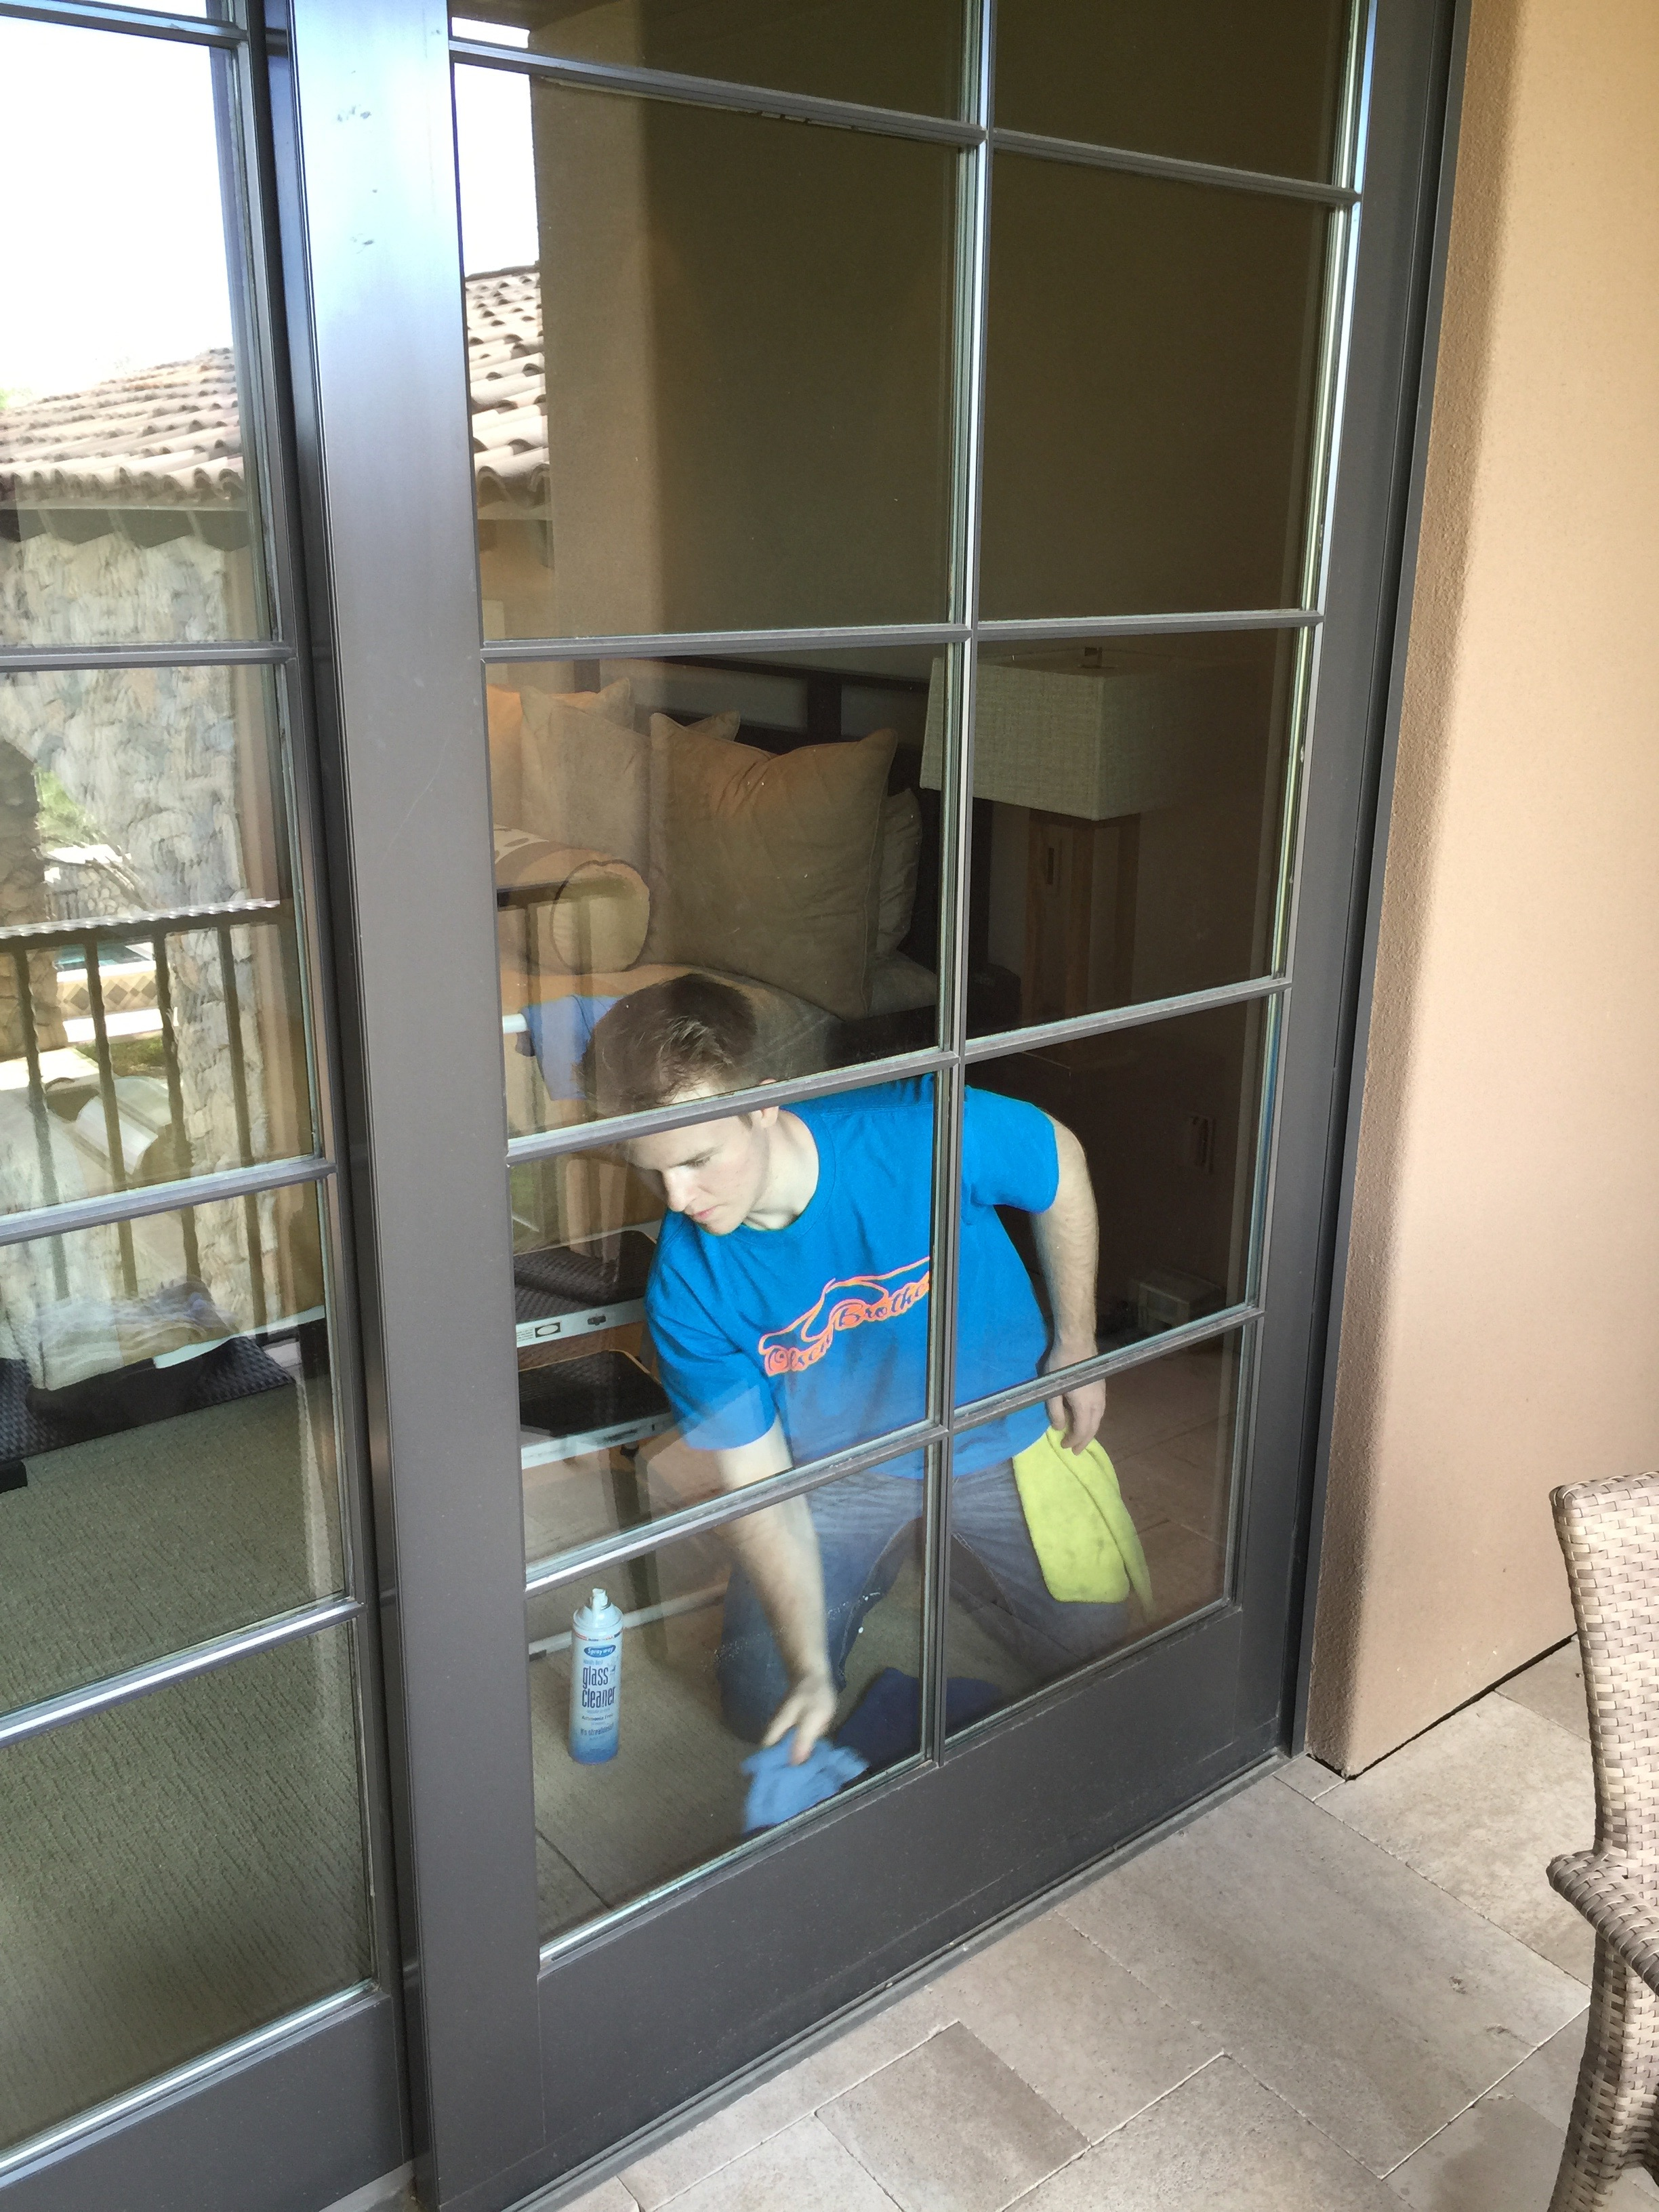 Home window washing in mesa, Arizona